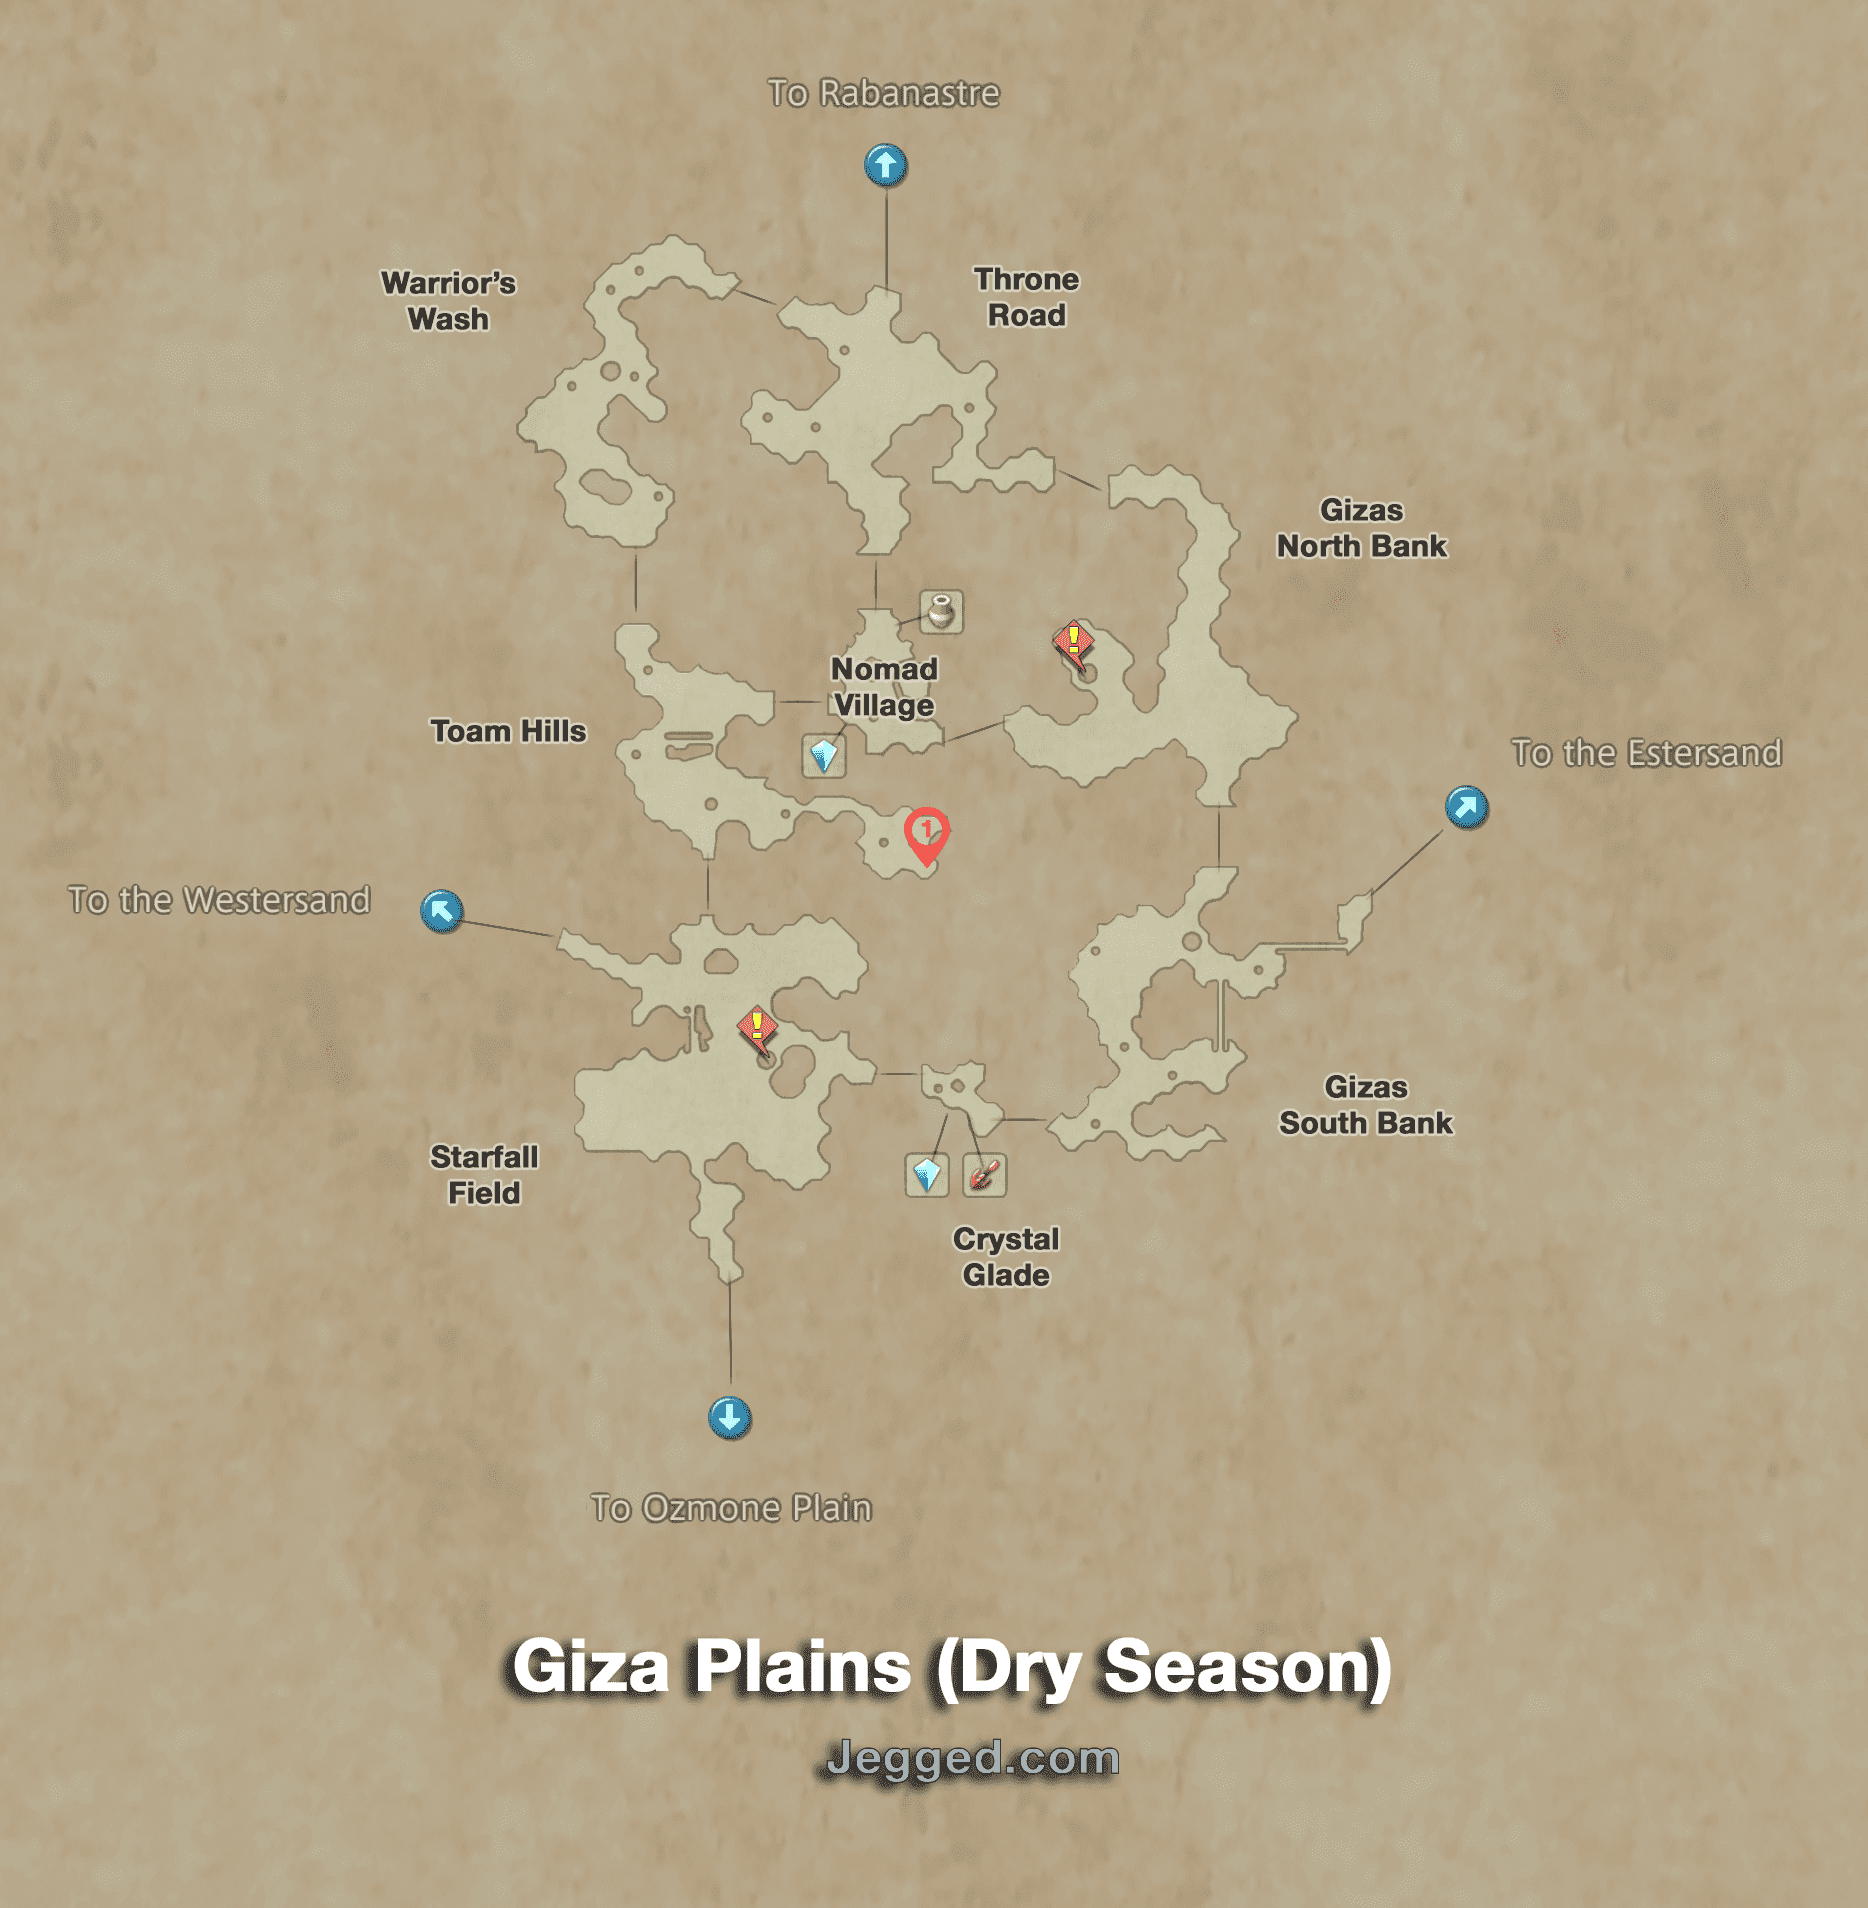 Map of the Giza Plains during the Dry Season